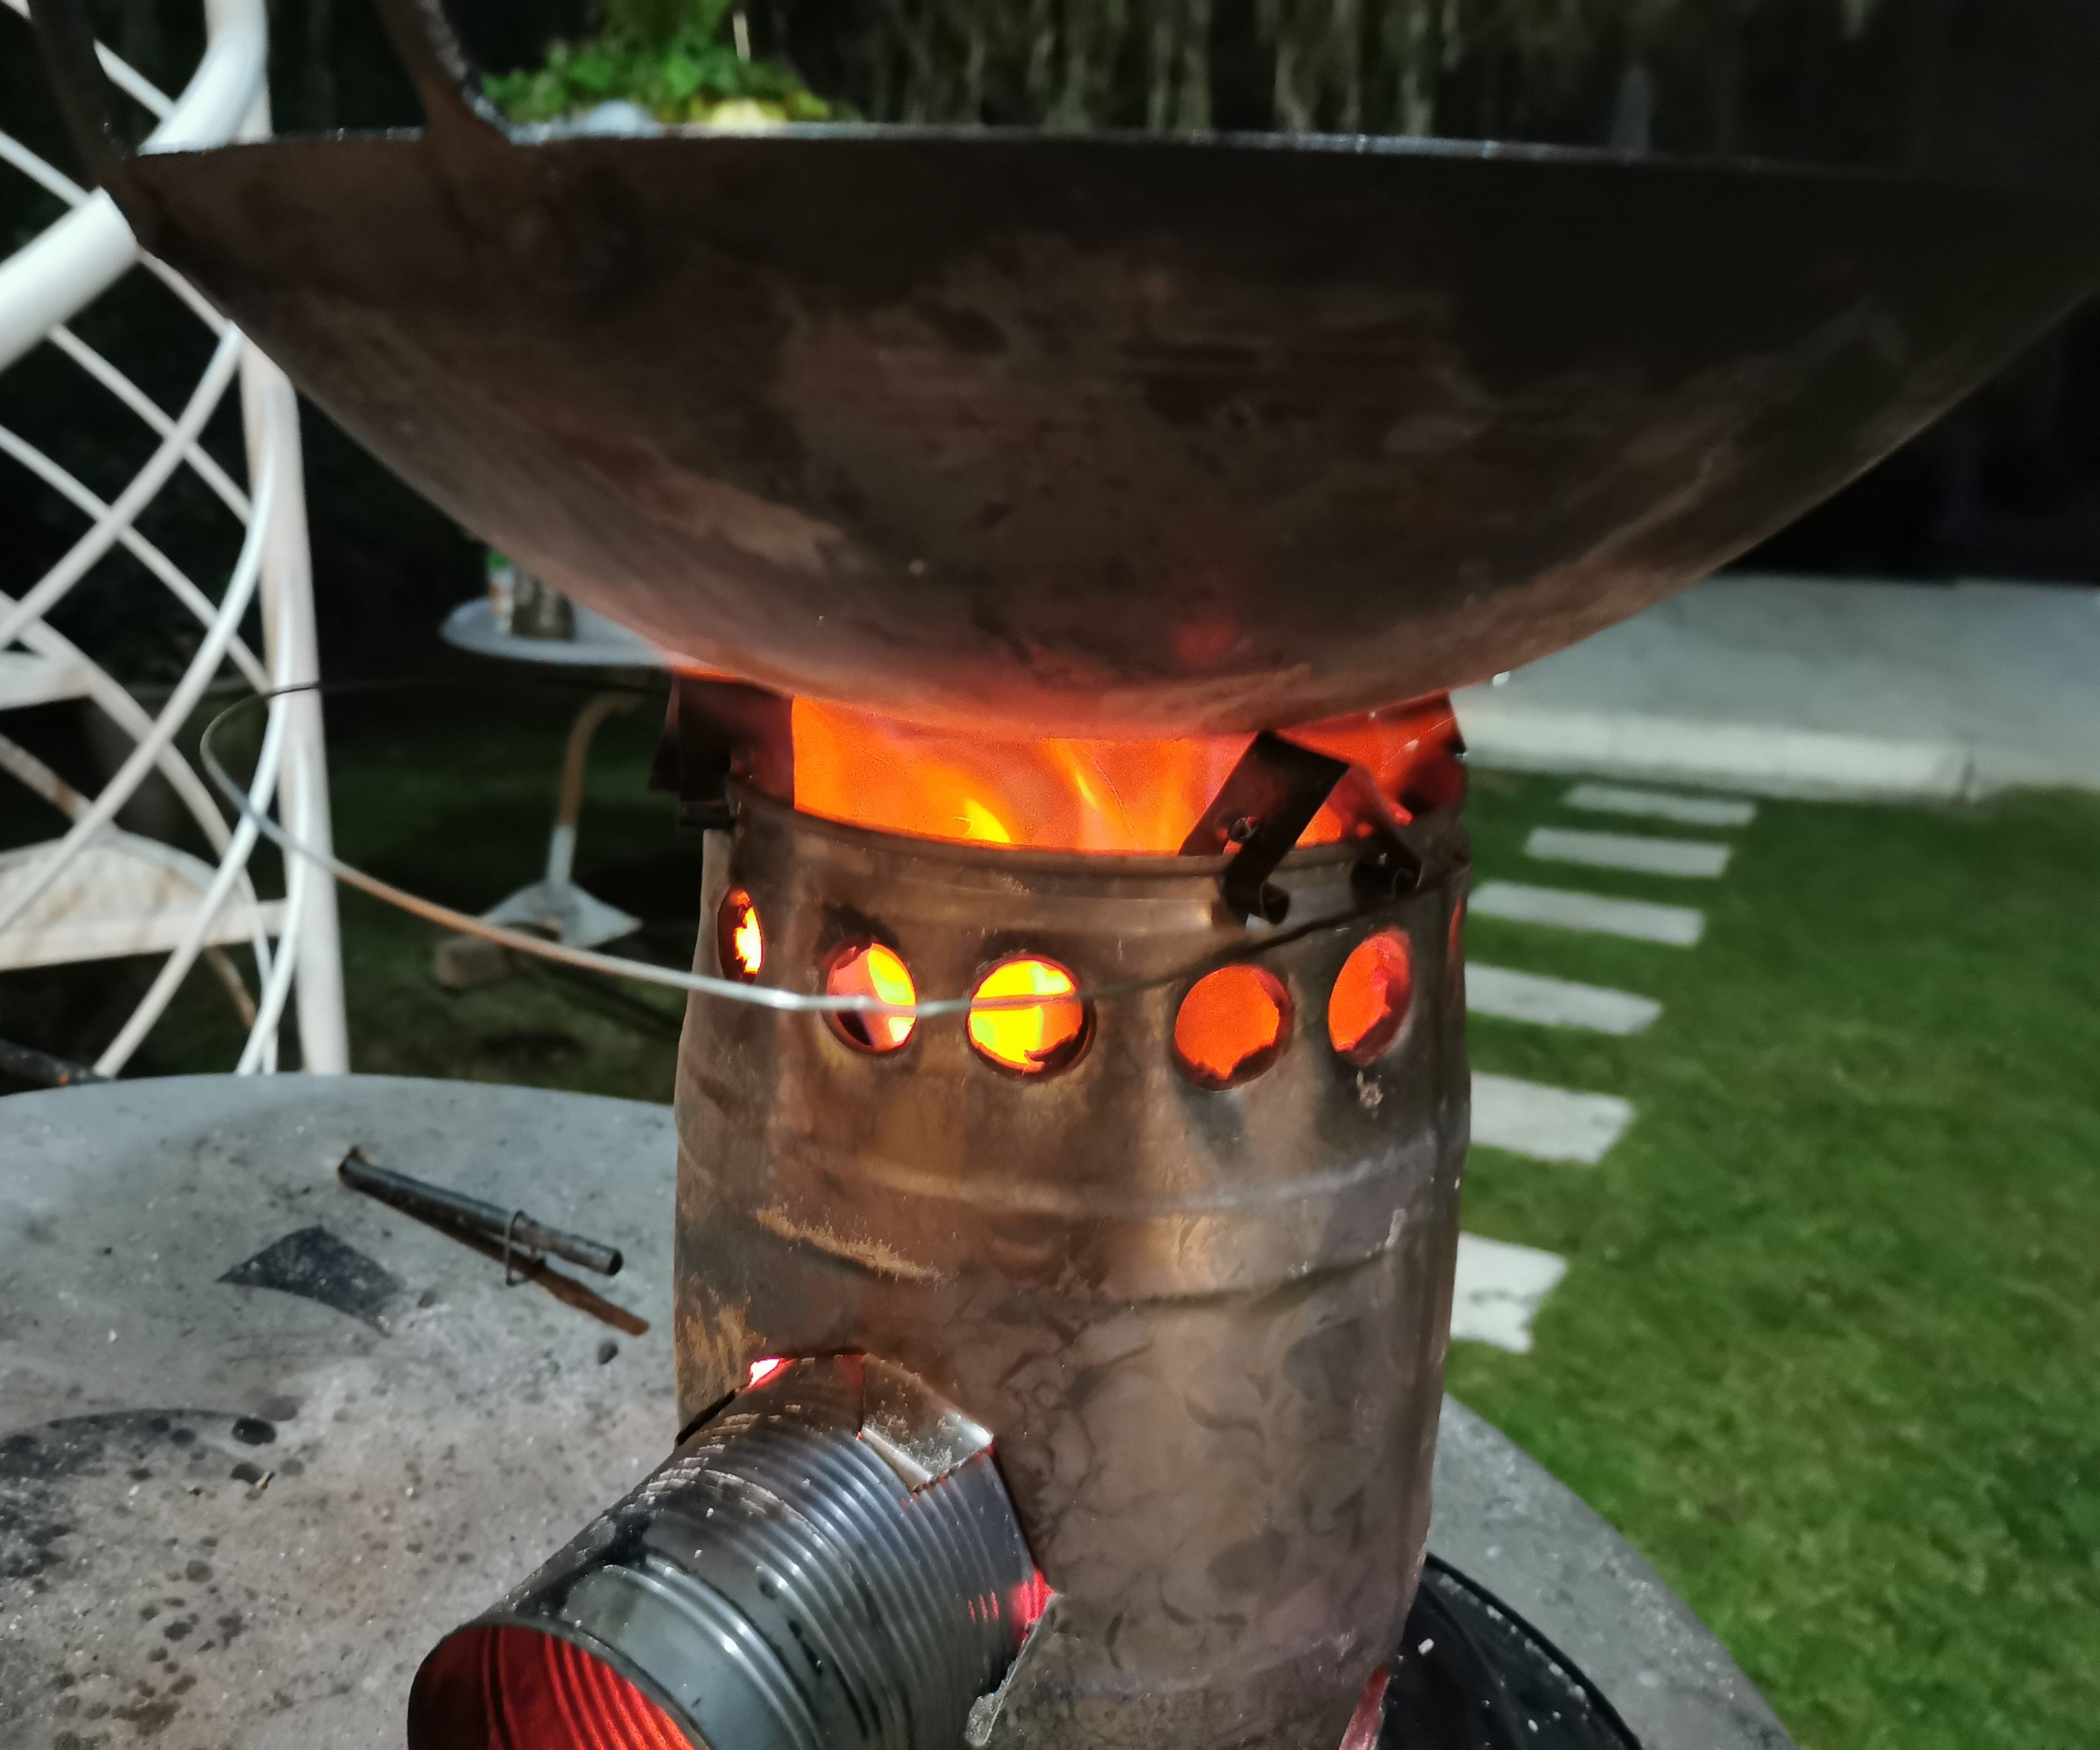 5L Beer Can Stove 2.0 From All Scrabs